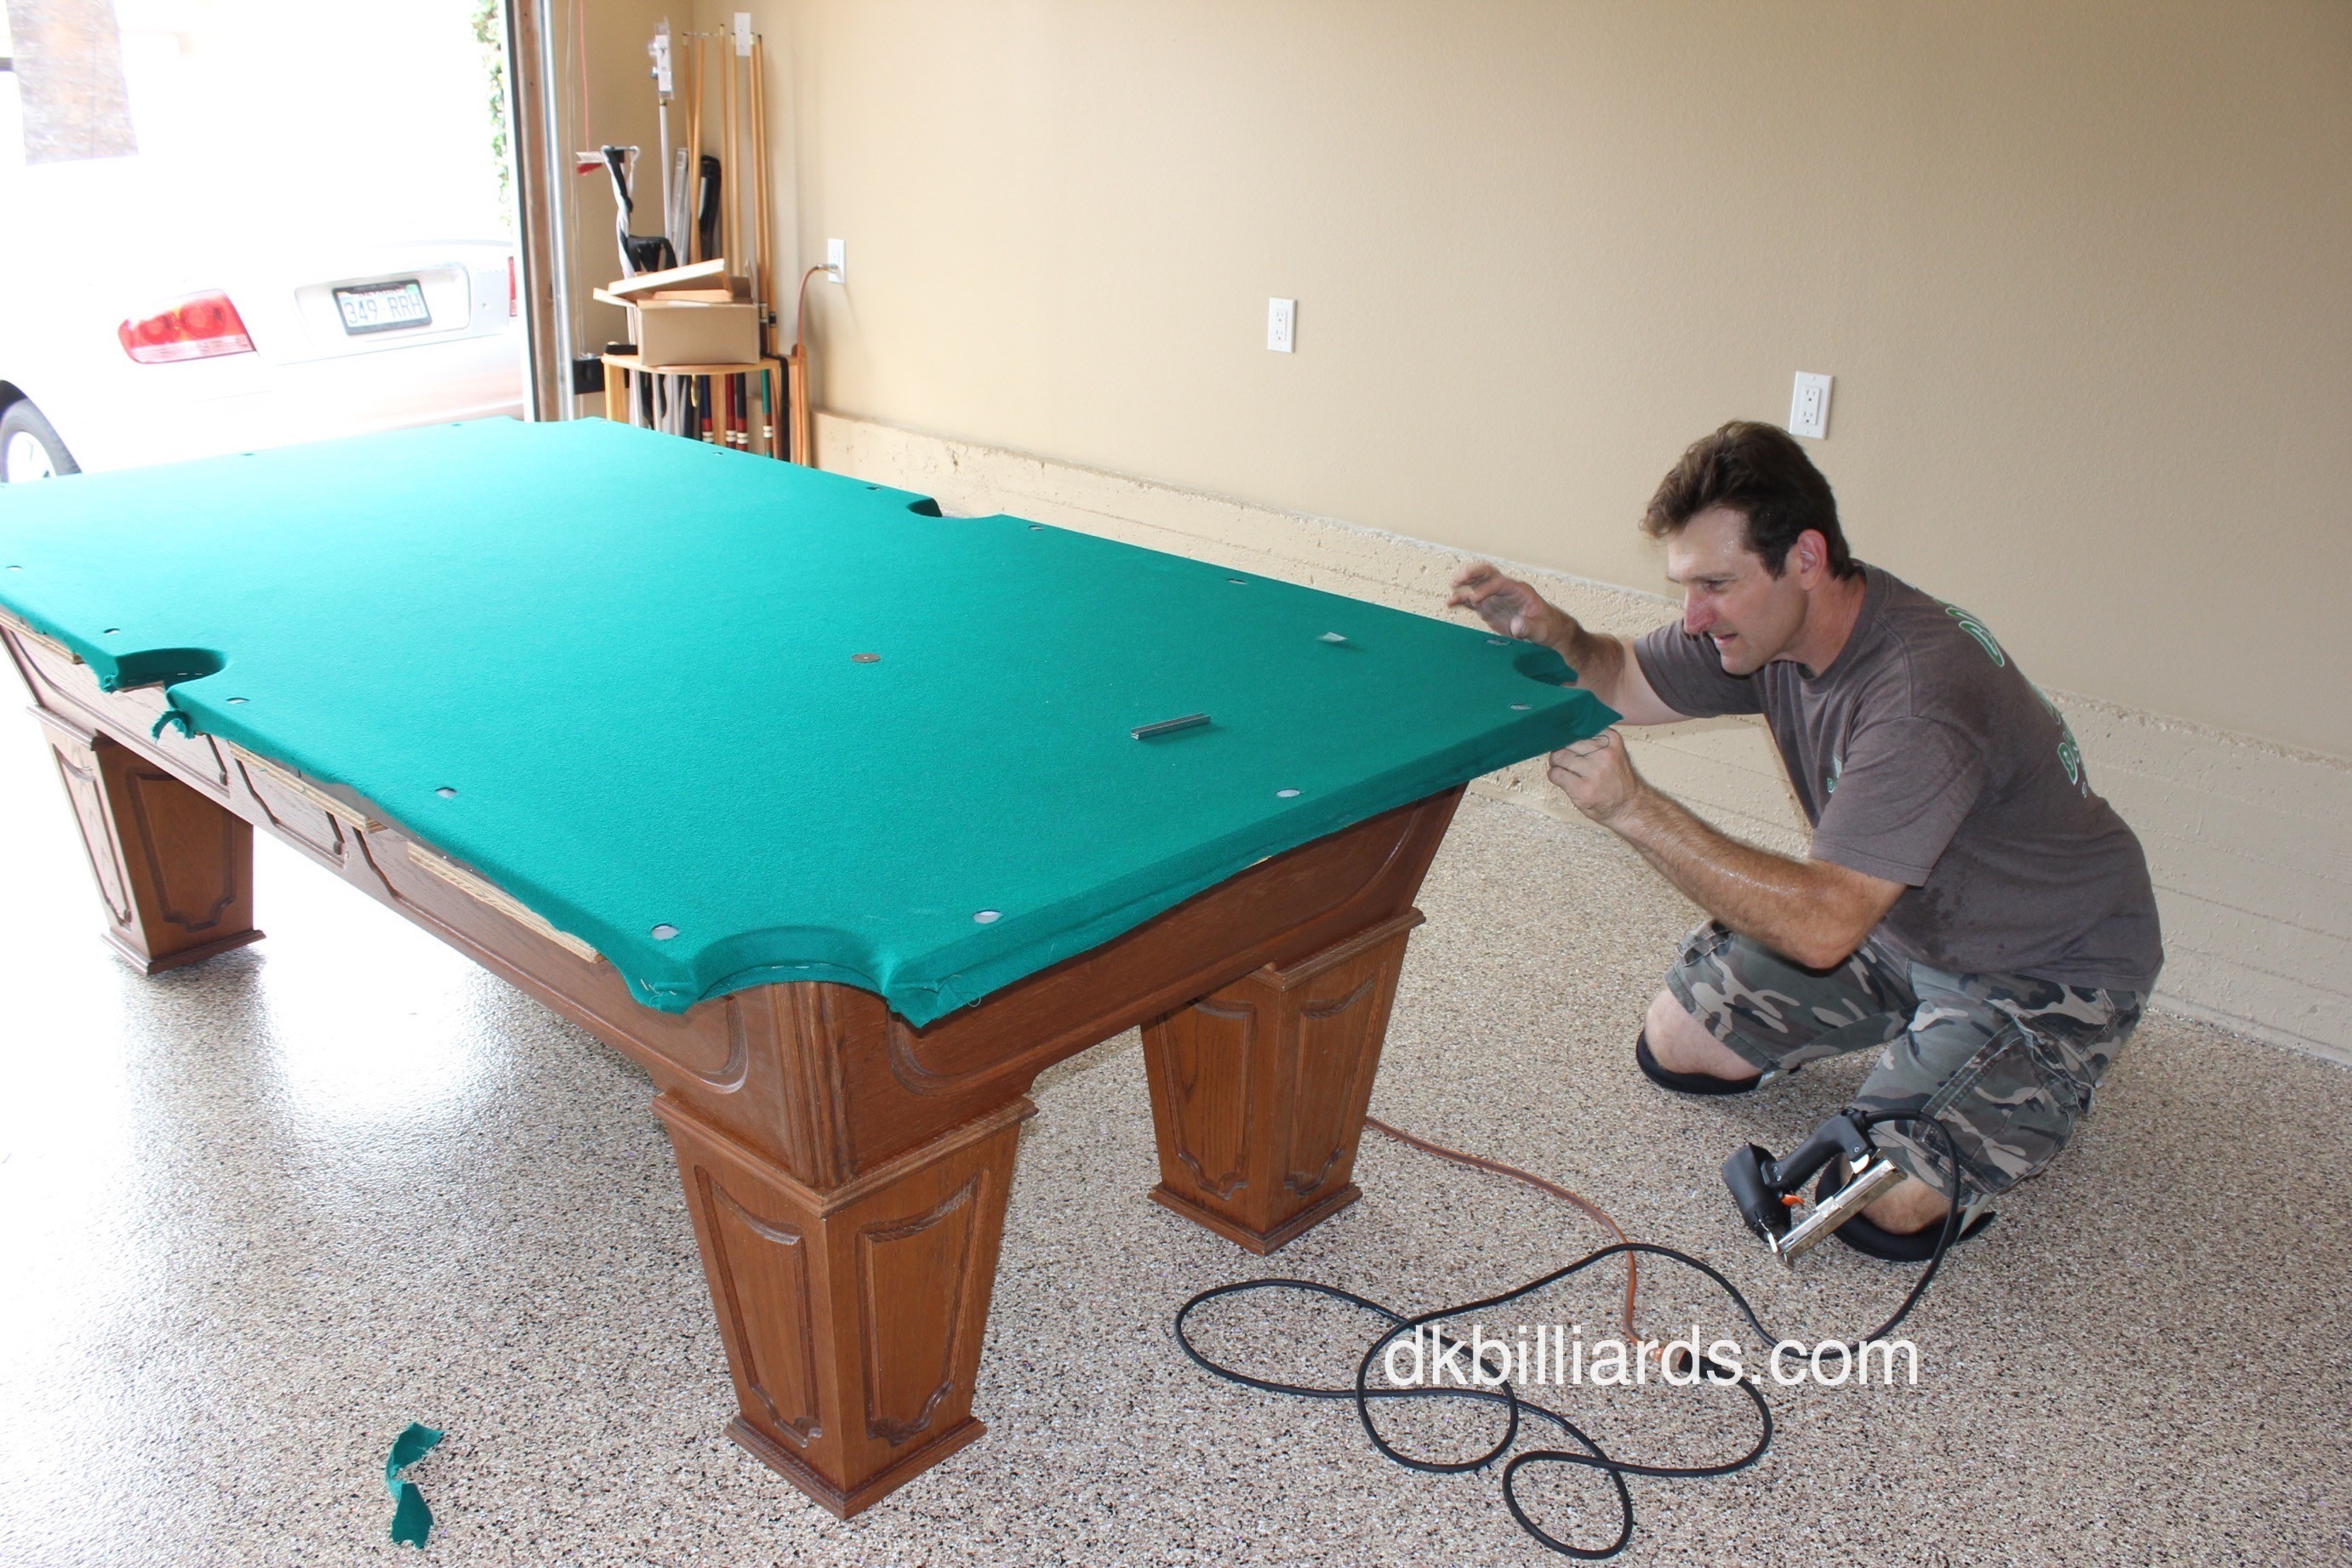 Though Some Of Our Customers Choose To Dismantle Their Table Themselves,  Hardly Any Are Able To Reassemble And Prep It For Play. Learn More About  Moving, ...